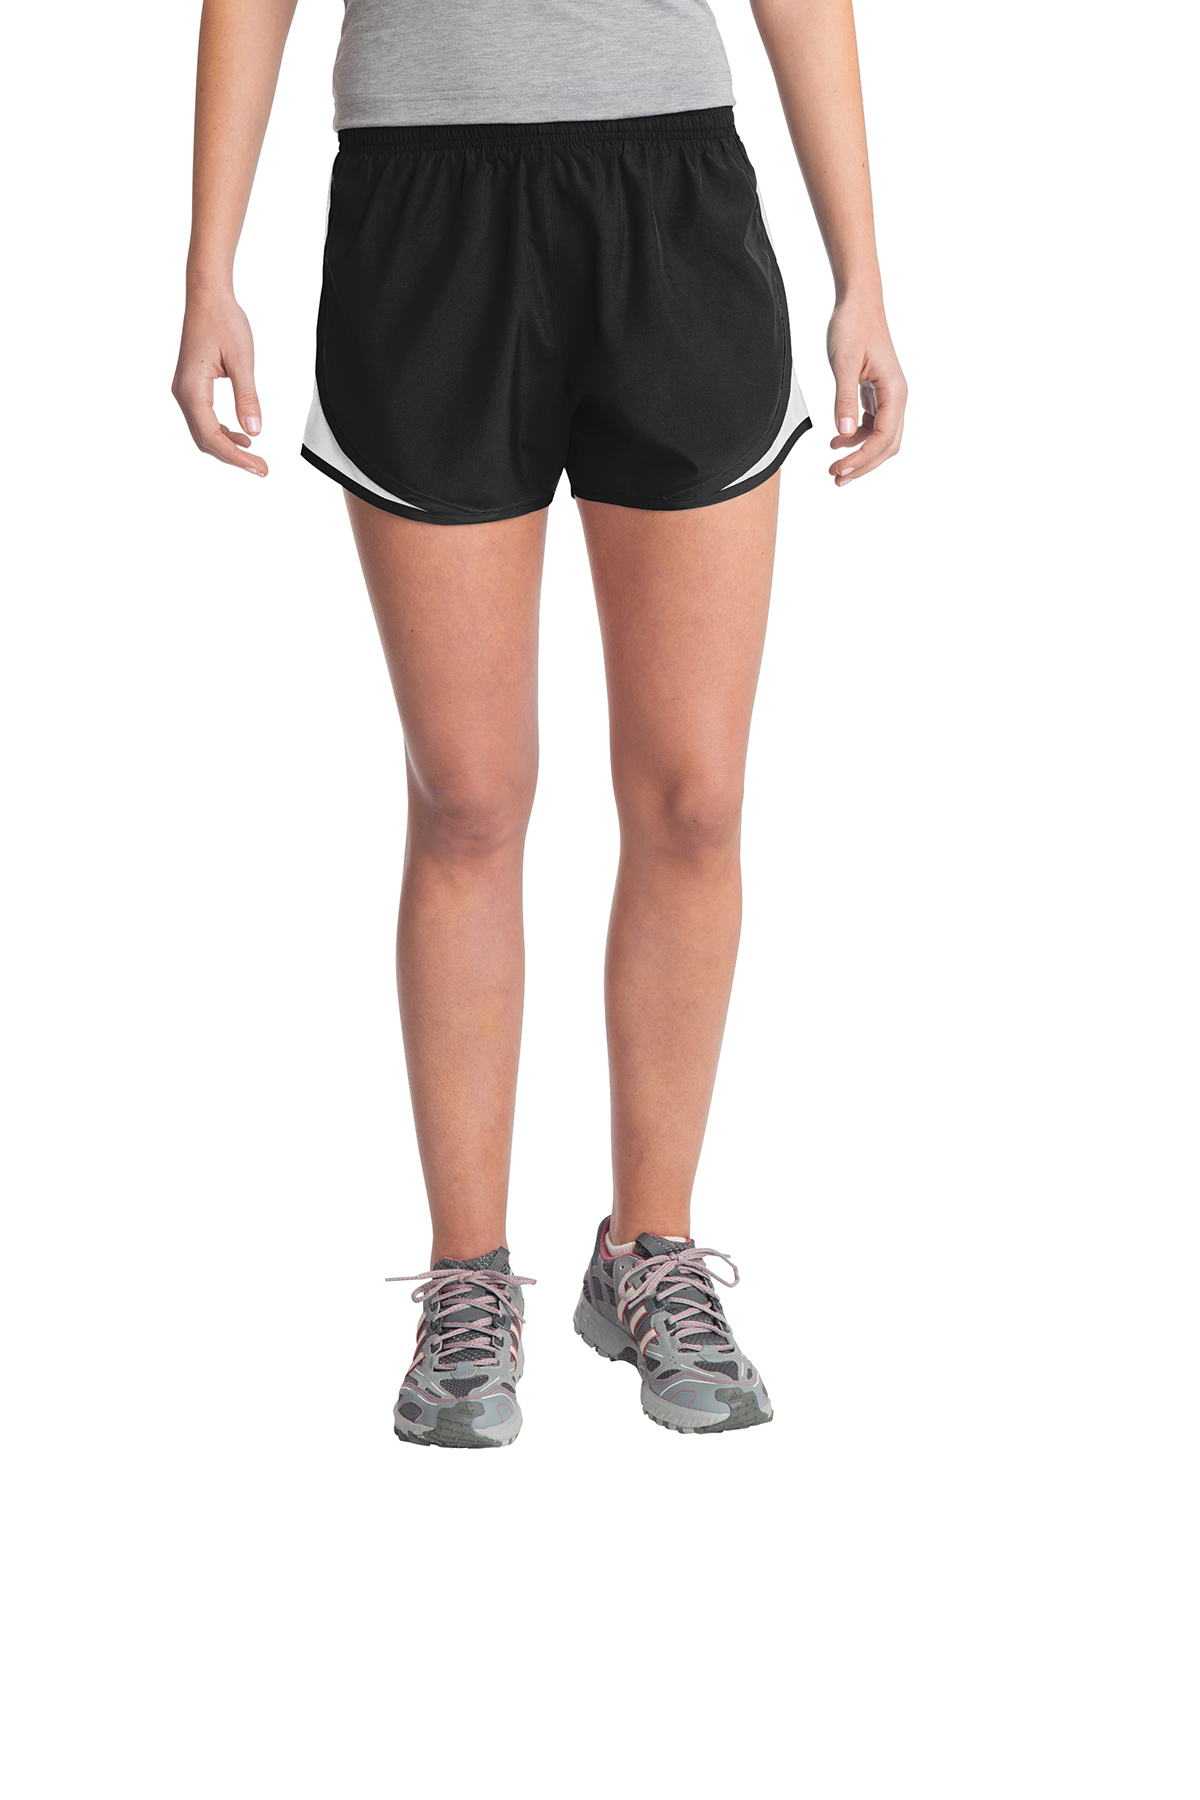 Sport Tek Lst304 Ladies Cadence Short Women S Shorts Shop our range of men's shorts online at jd sports ✓ express delivery available ✓buy now, pay later. sport tek lst304 ladies cadence short